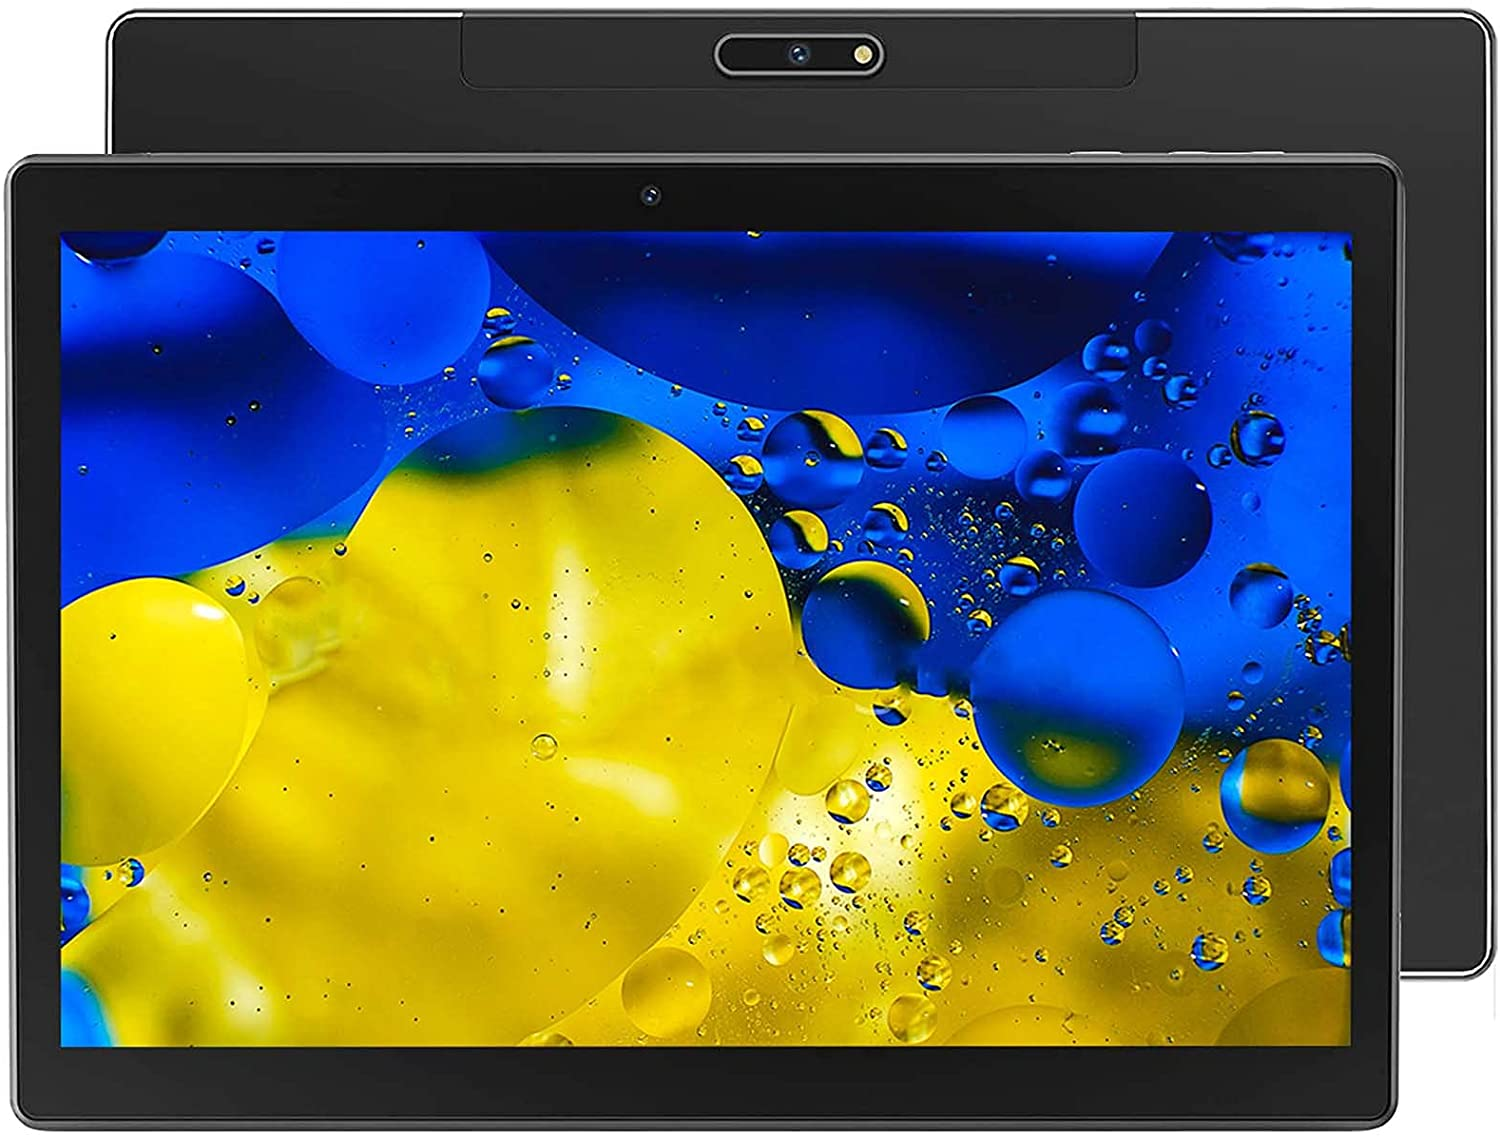 Android Tablet 10 Inch,Octa-Core Processor, 1280×800 HD Screen, 5MP+13MP Dual Cameras,2G RAM 32G ROM,5G WiFi,Bluetooth 5.0(Black)